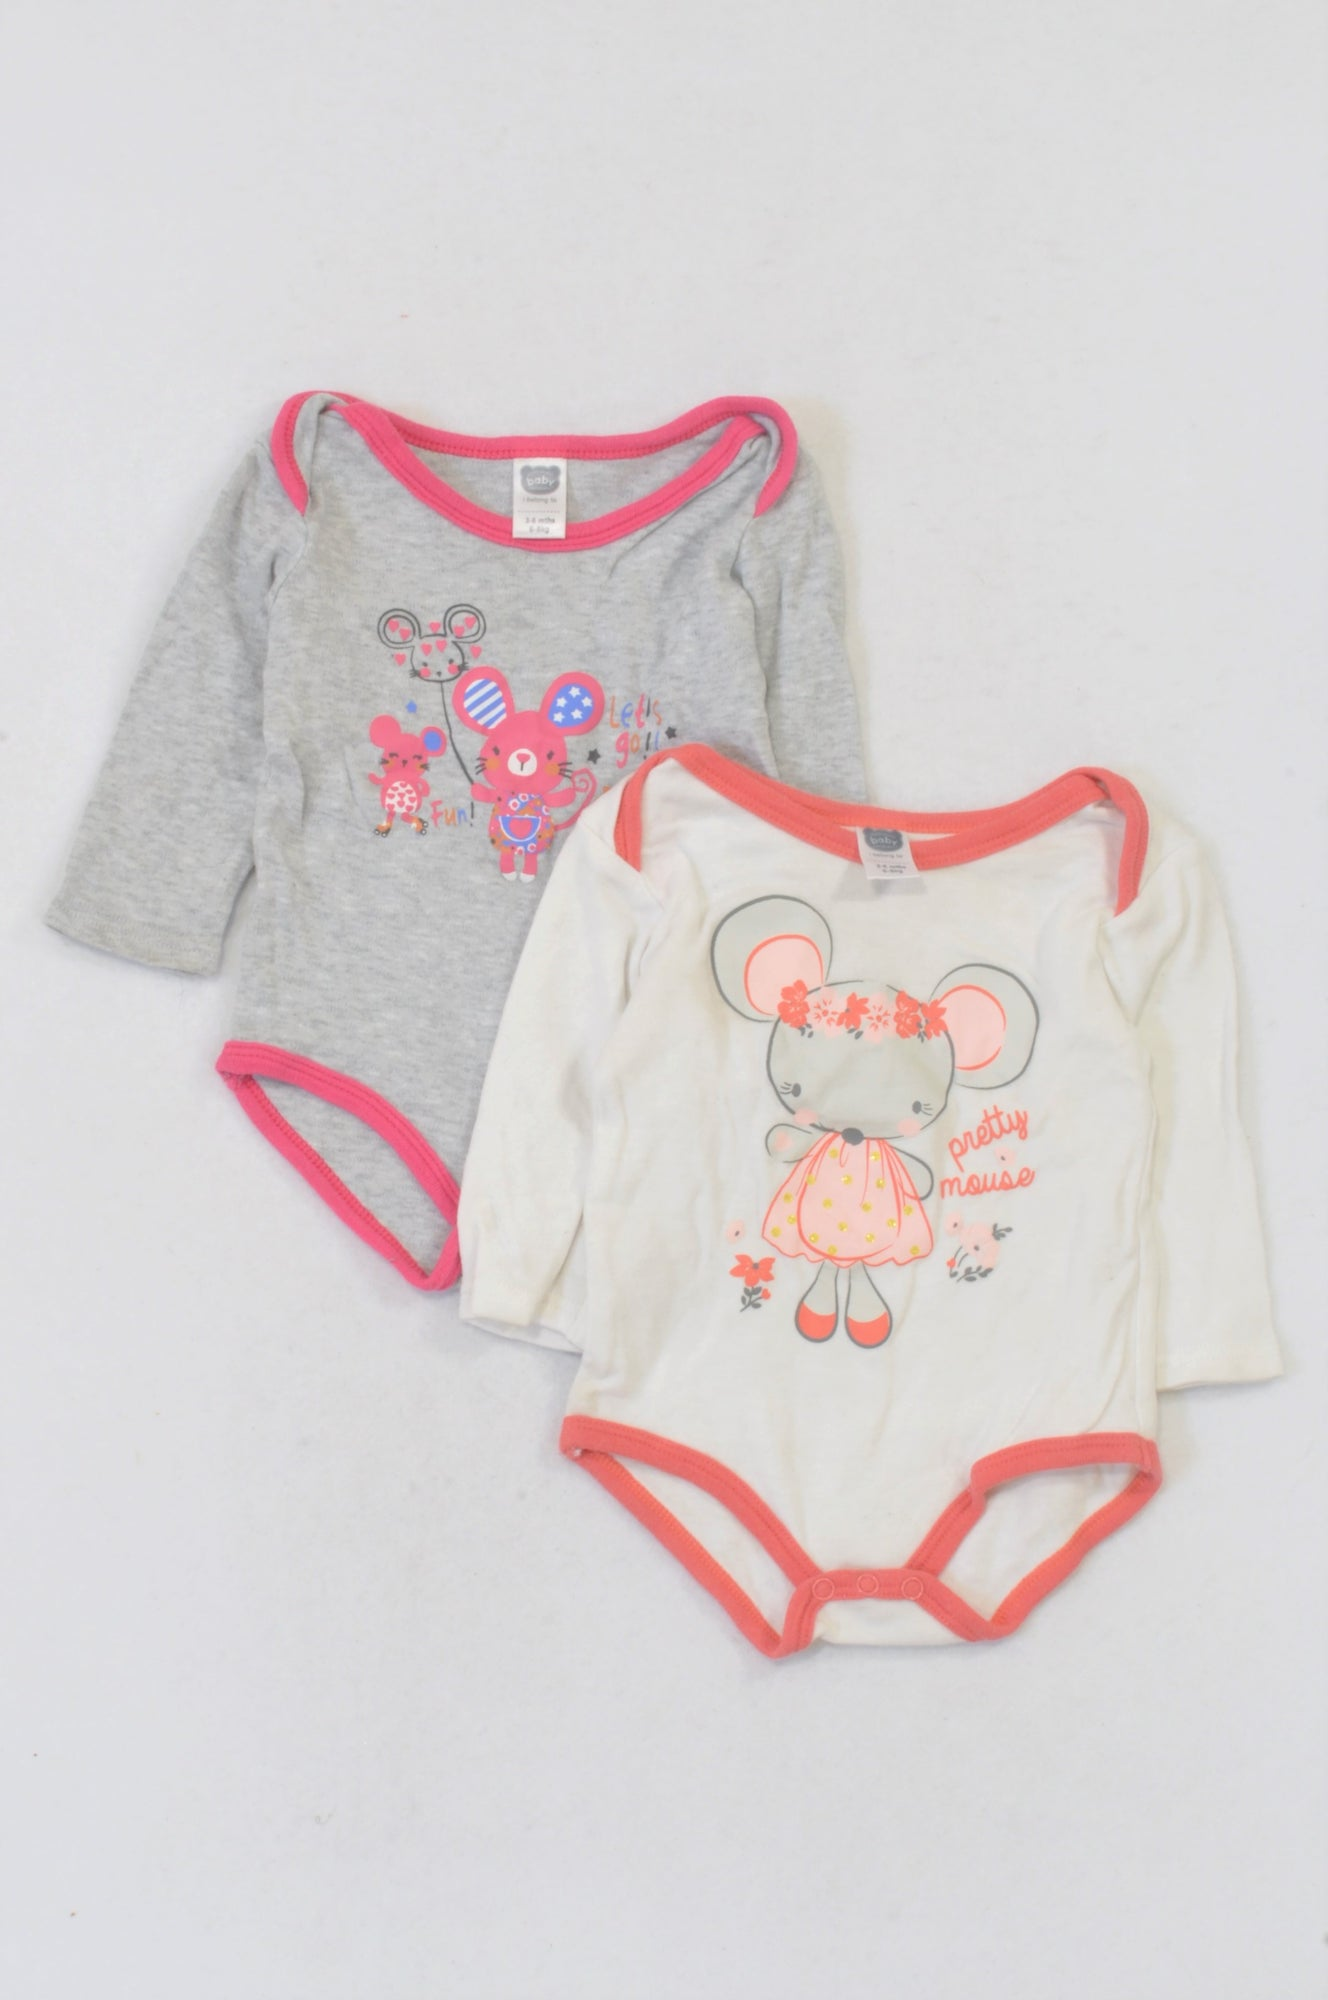 059d1c940 Ackermans 2 Pack Mouse Baby Grows Girls 3-6 months – Once More